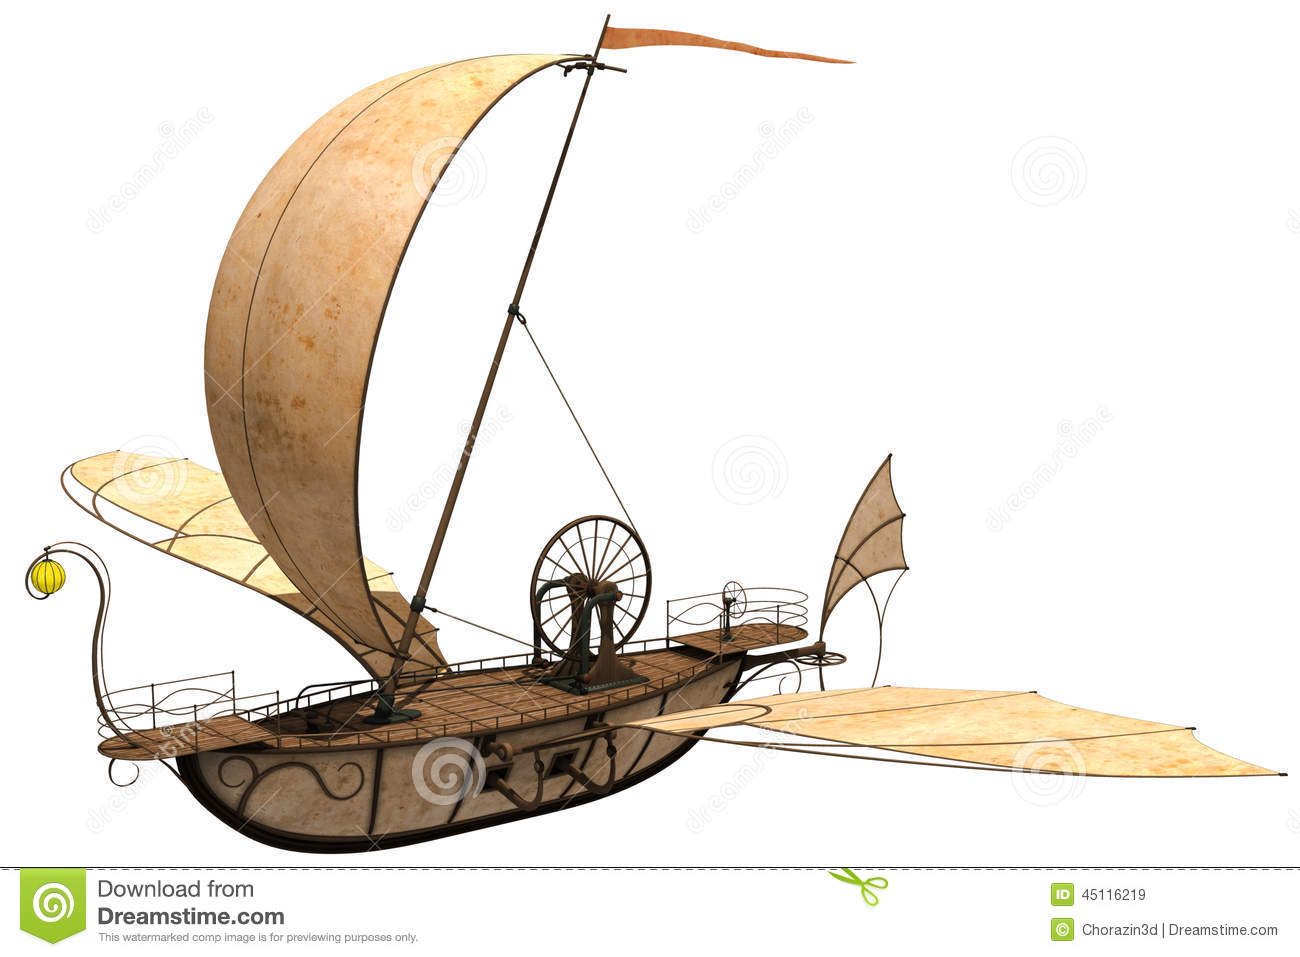 1000+ ideas about Flying Boat on Pinterest.